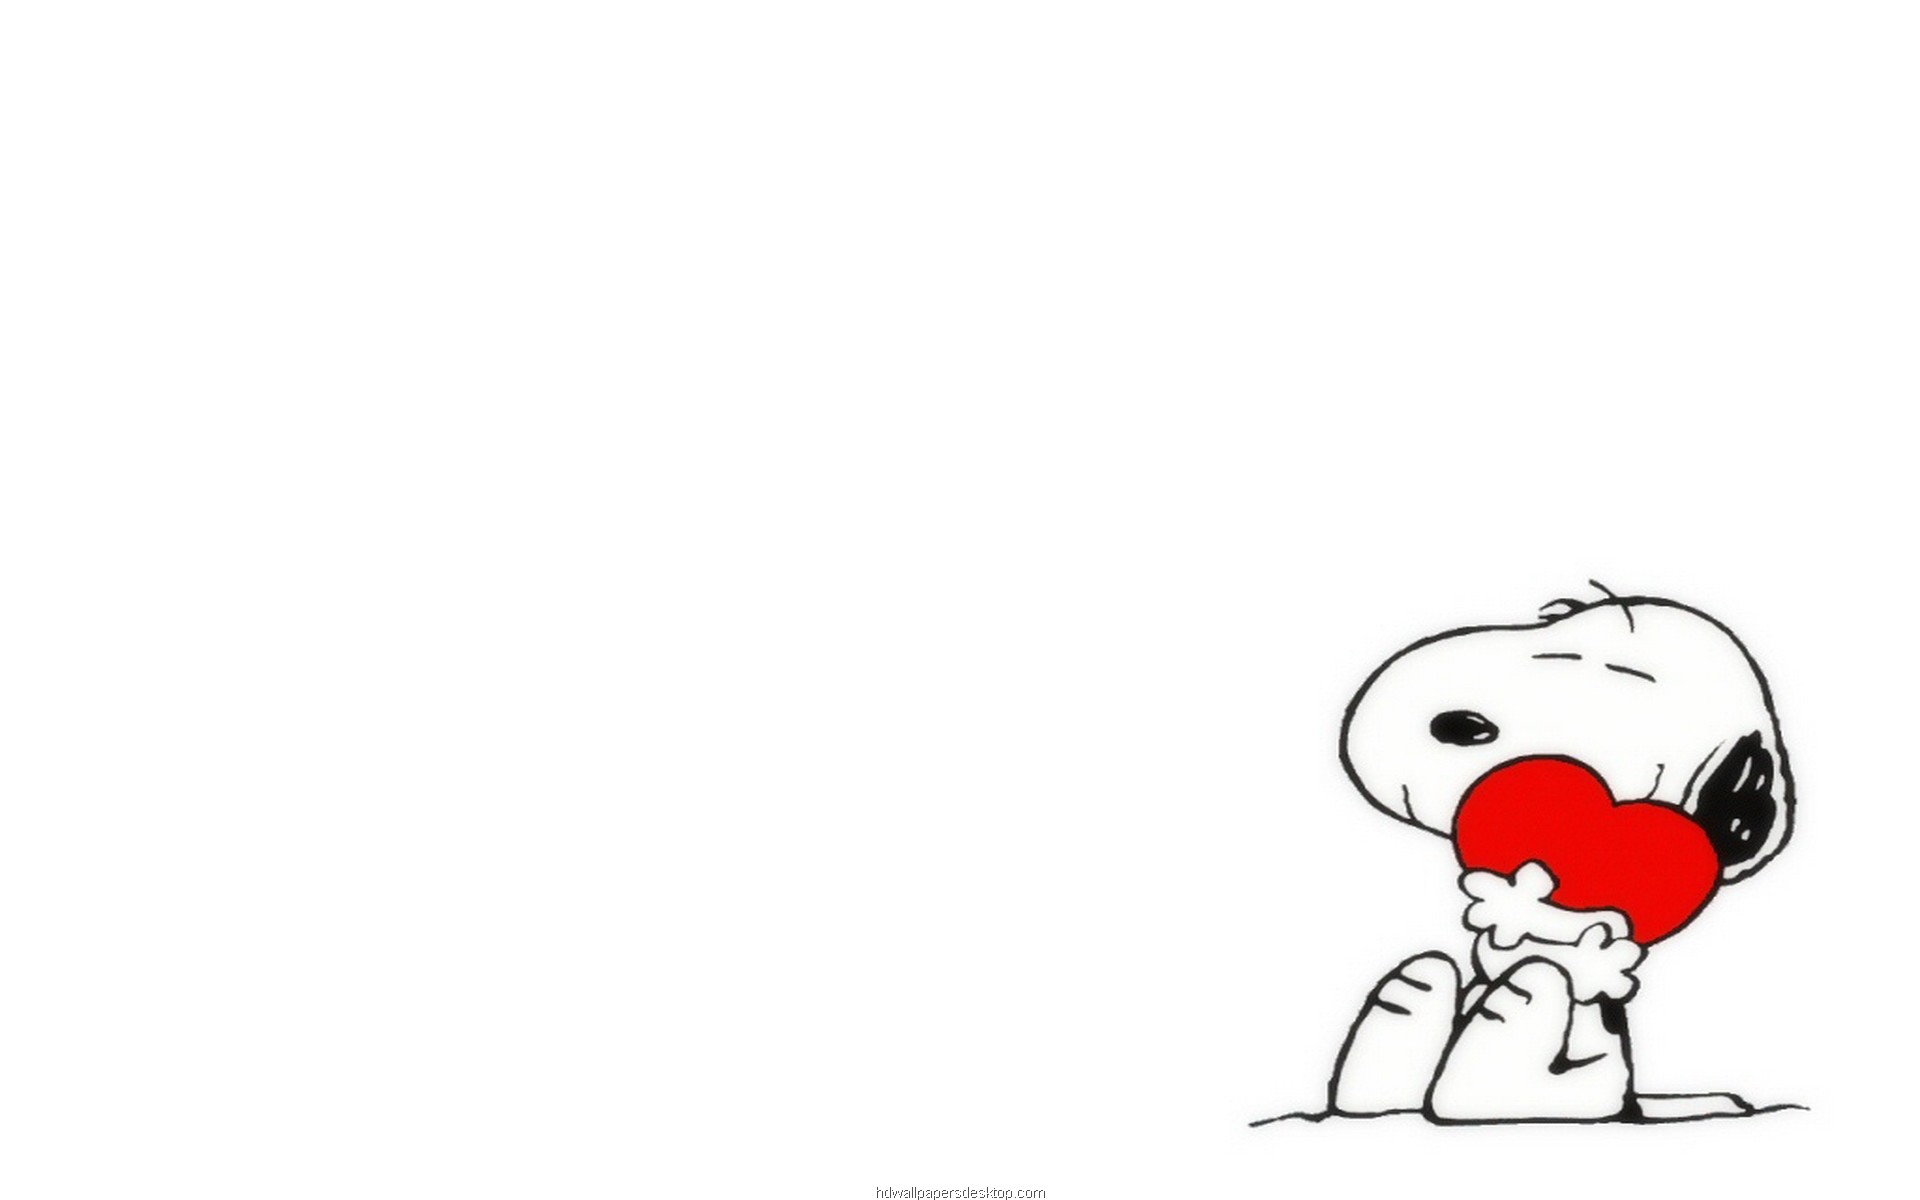 1920x1200 Download image Free Snoopy Spring Desktop Wallpaper PC, Android .